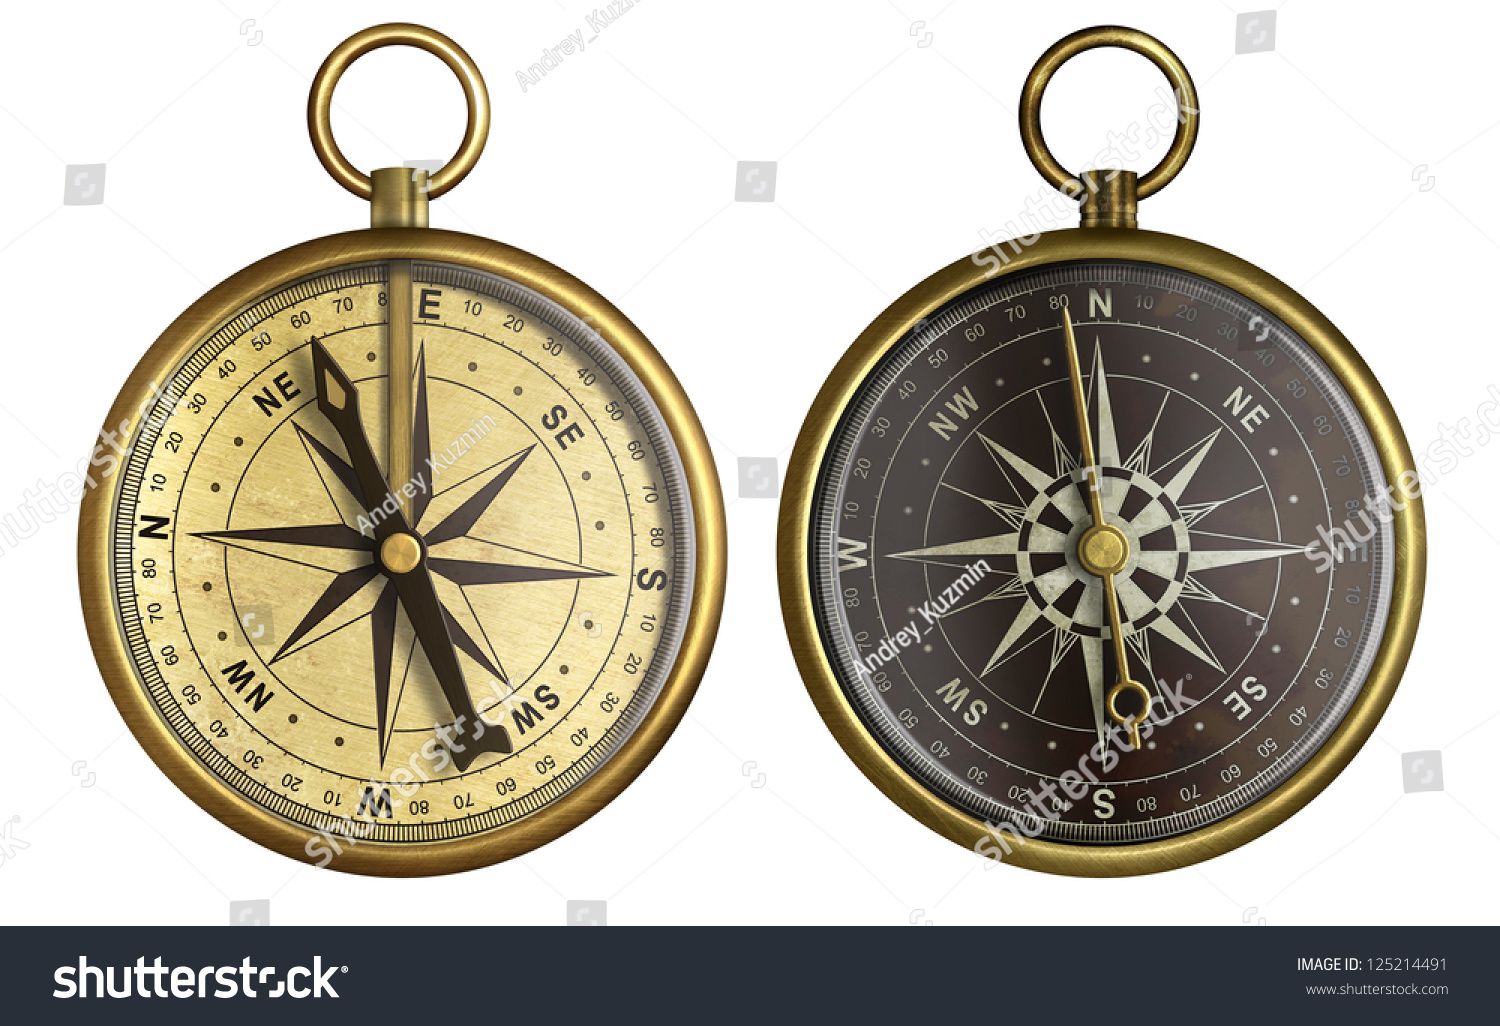 Old compass collection. Two aged brass antique nautical pocket compass ...